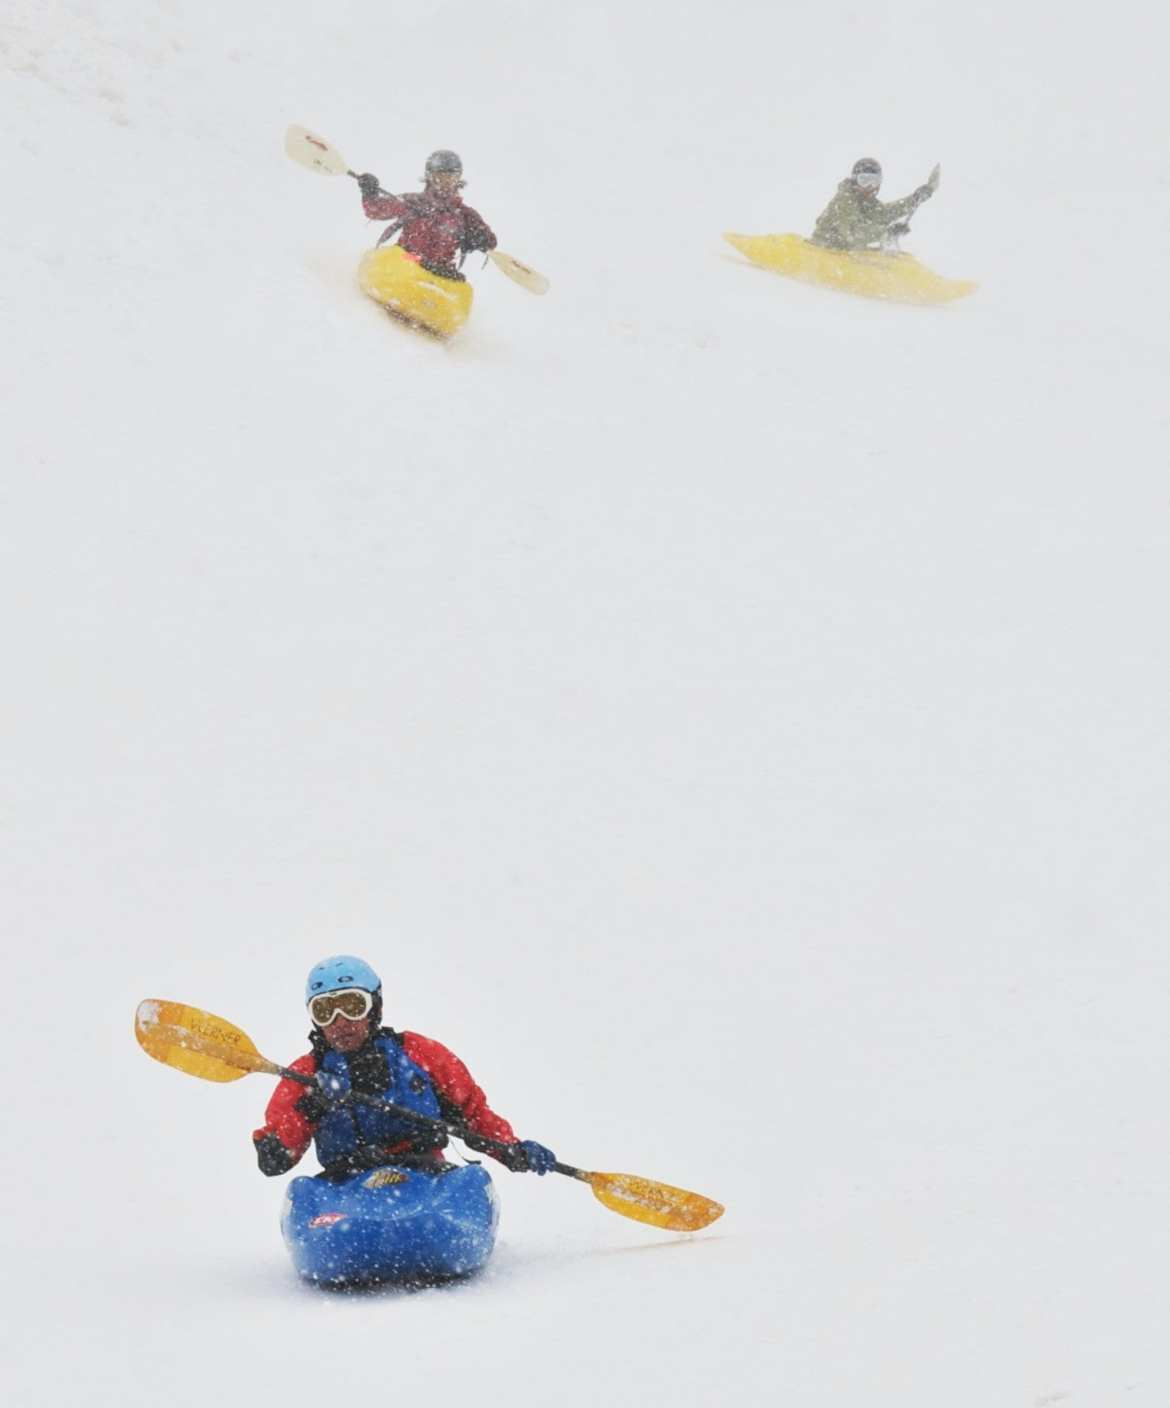 Ruige wintersporten Snow Kayaking